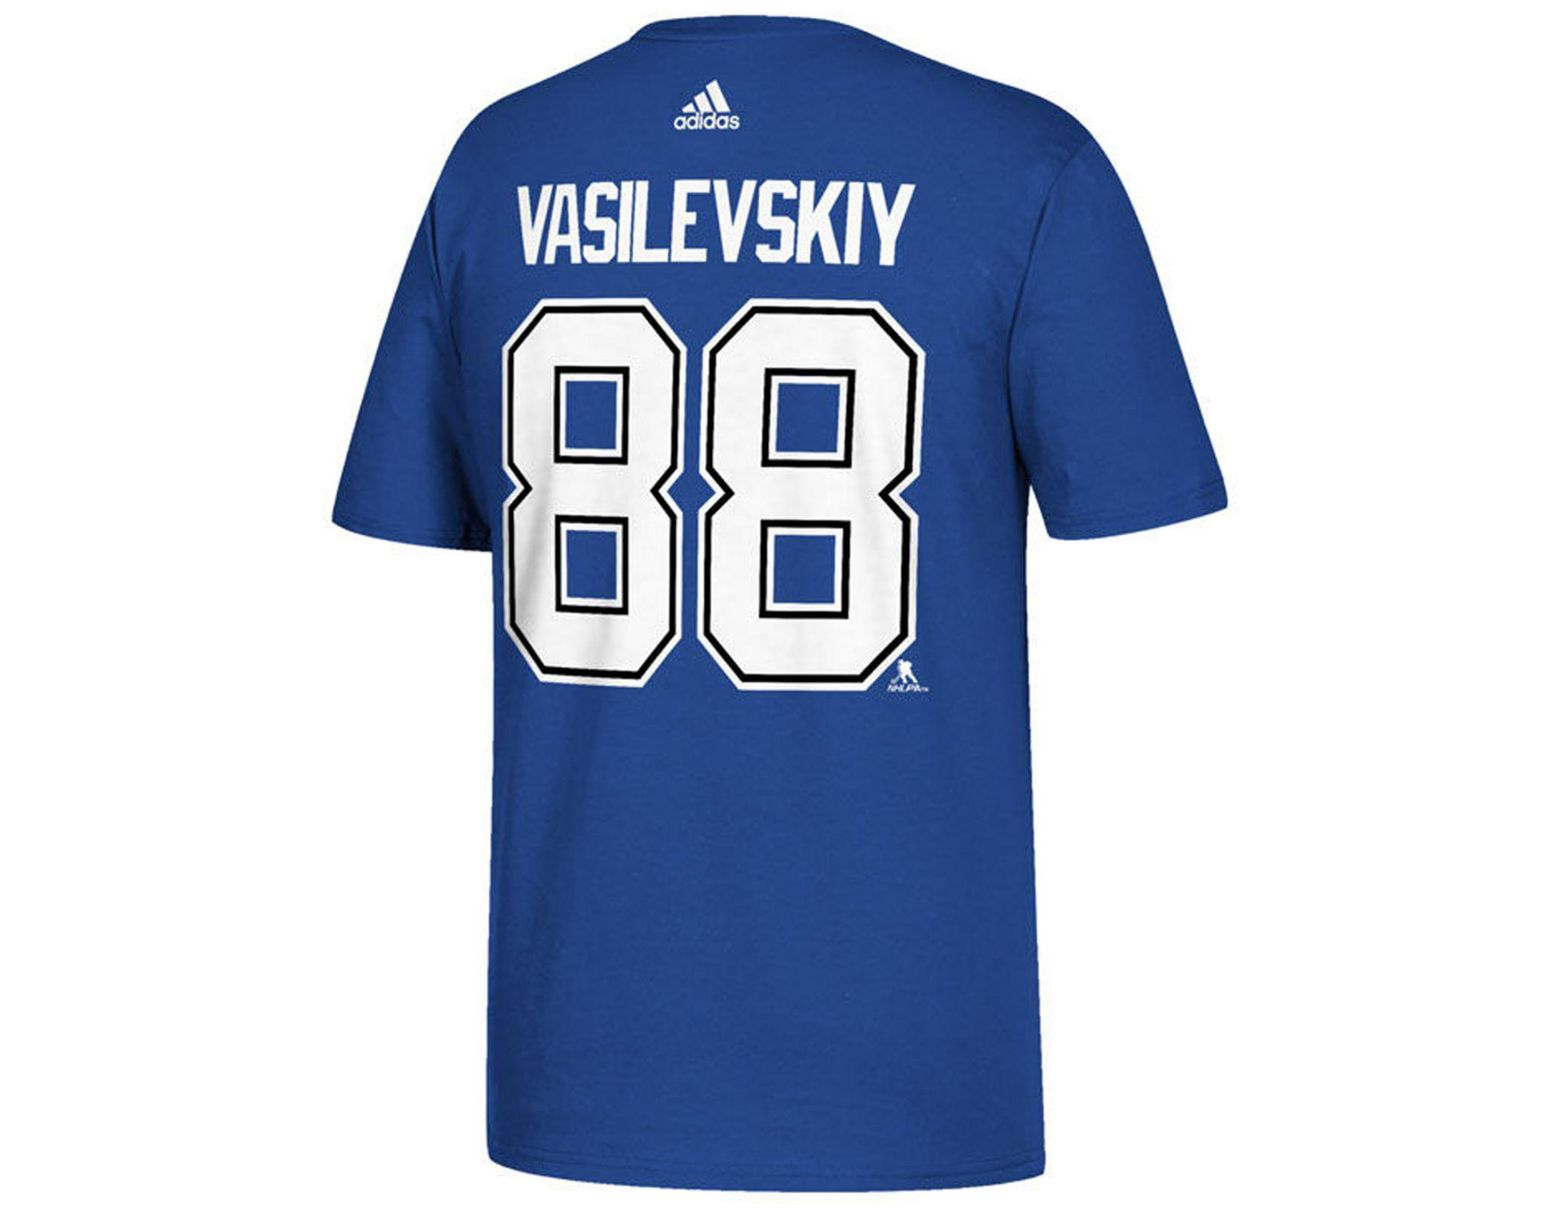 online store 4c7c9 646d3 adidas Andrei Vasilevskiy Tampa Bay Lightning Silver Player T-shirt in Blue  for Men - Lyst